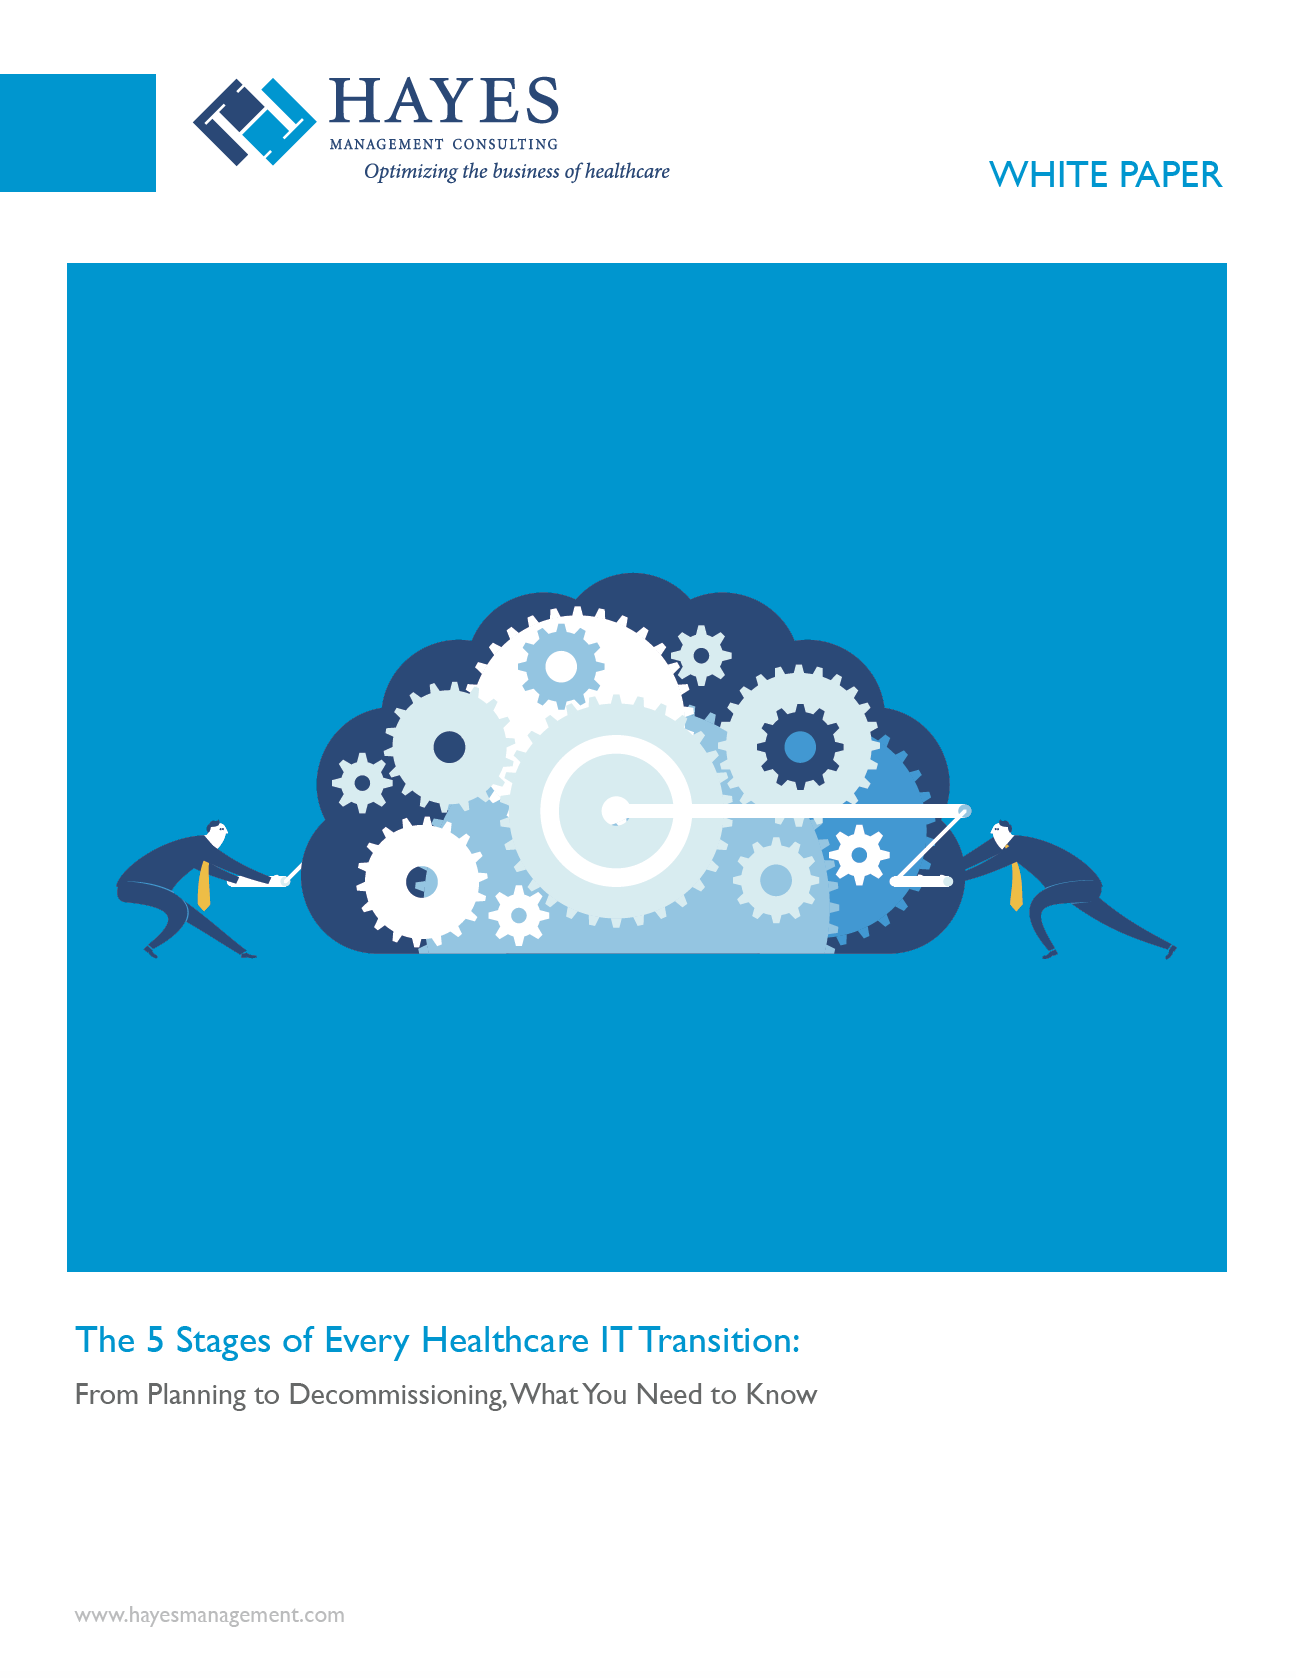 Hayes WHITE PAPER - 5 Stages of Every Healthcare IT Transition TN.png